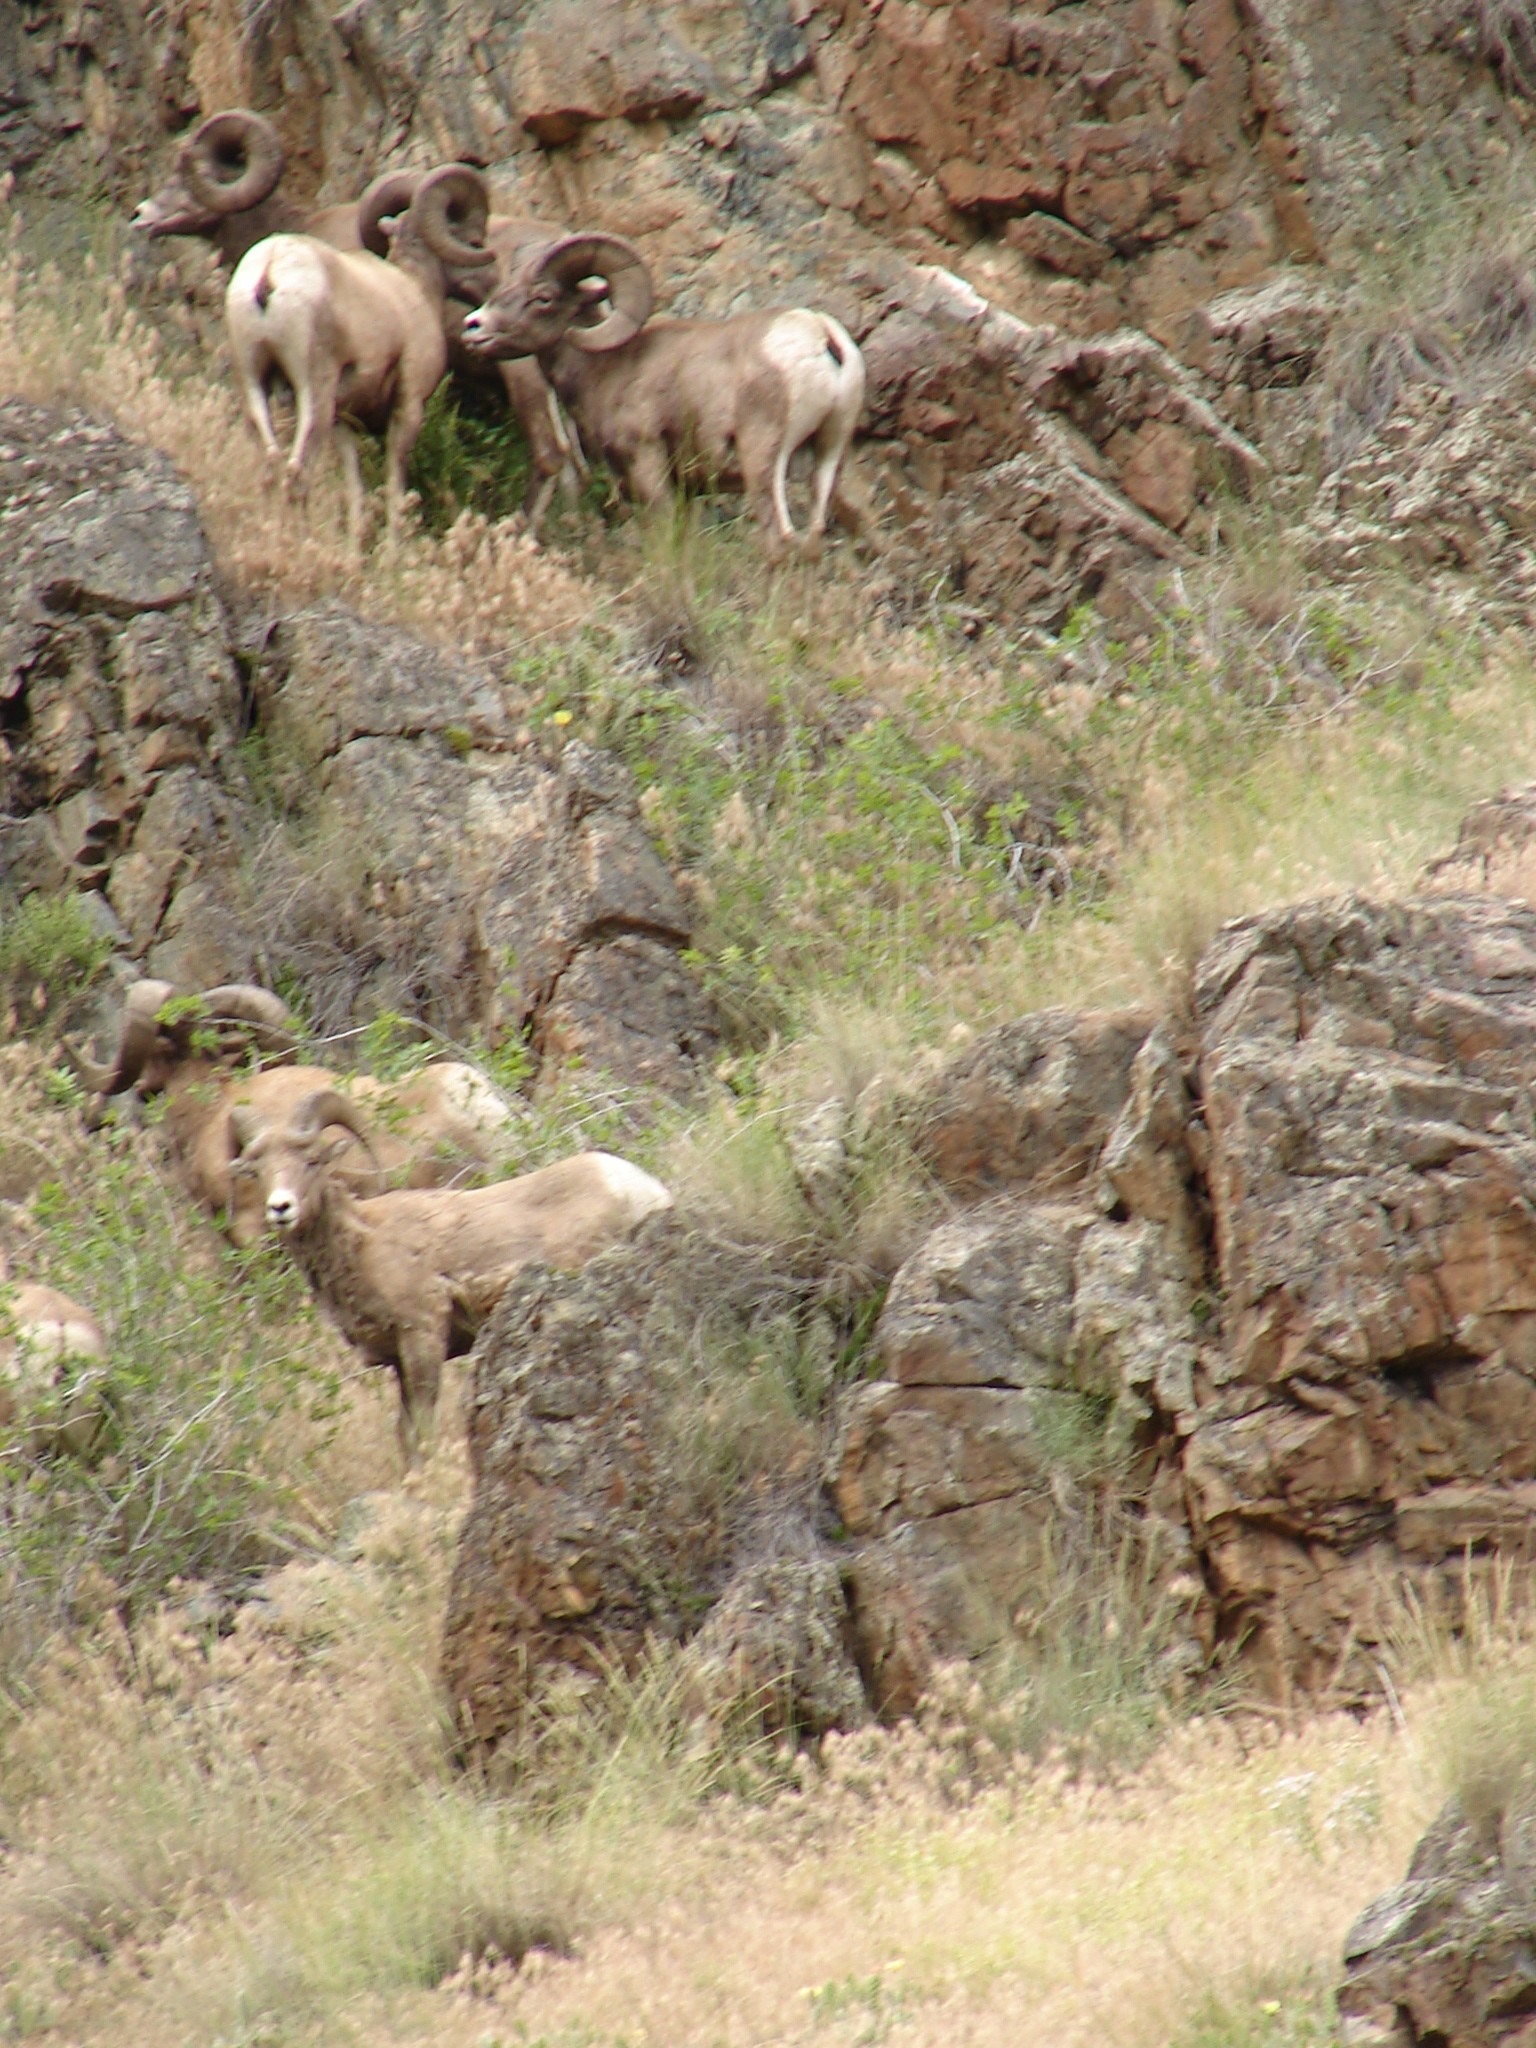 Several bighorn sheep on a rocky hillside